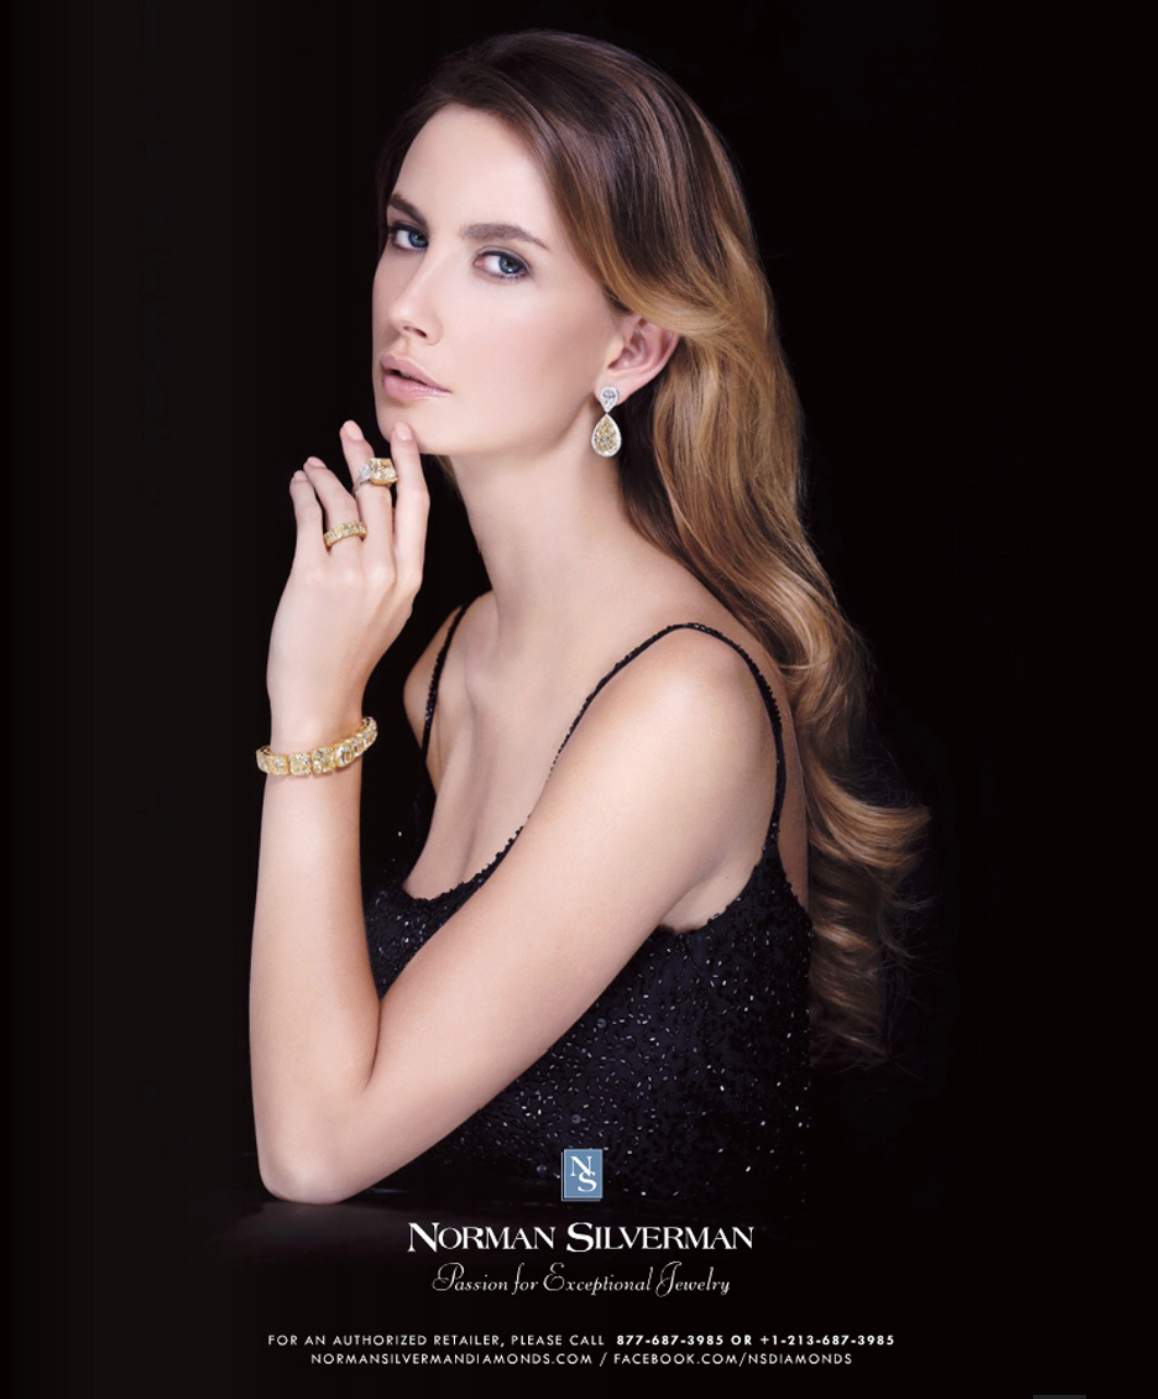 Norman Silverman Diamonds Photography | Geoffrey Ragatz Photographer